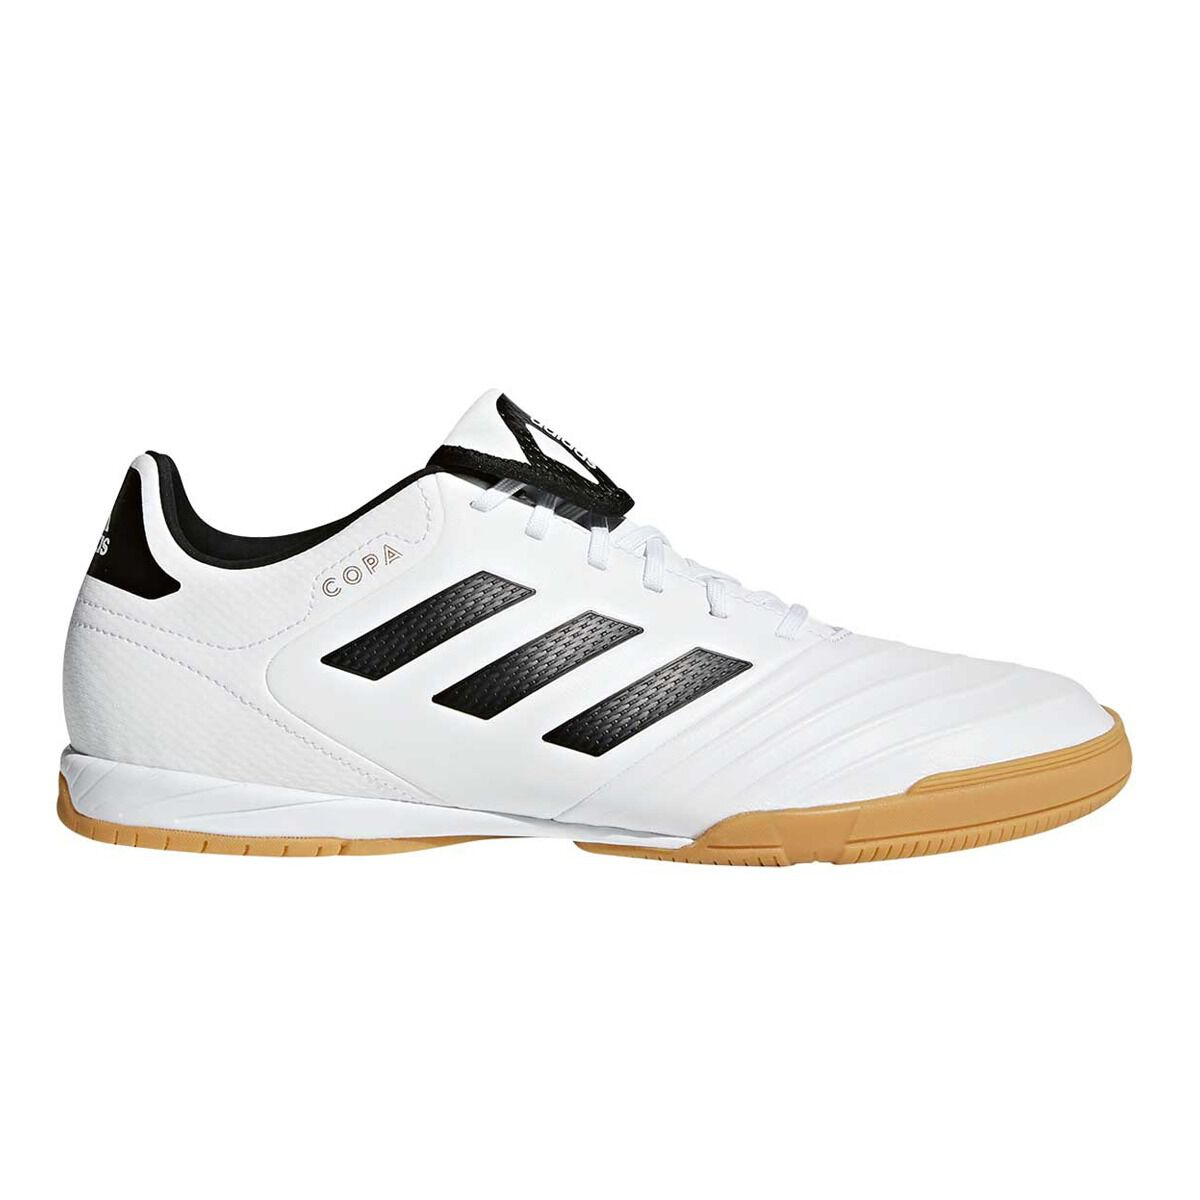 40f2cb11505 ... low cost adidas copa tango 18.3 mens indoor soccer shoes white black us  10.5 adult white ...